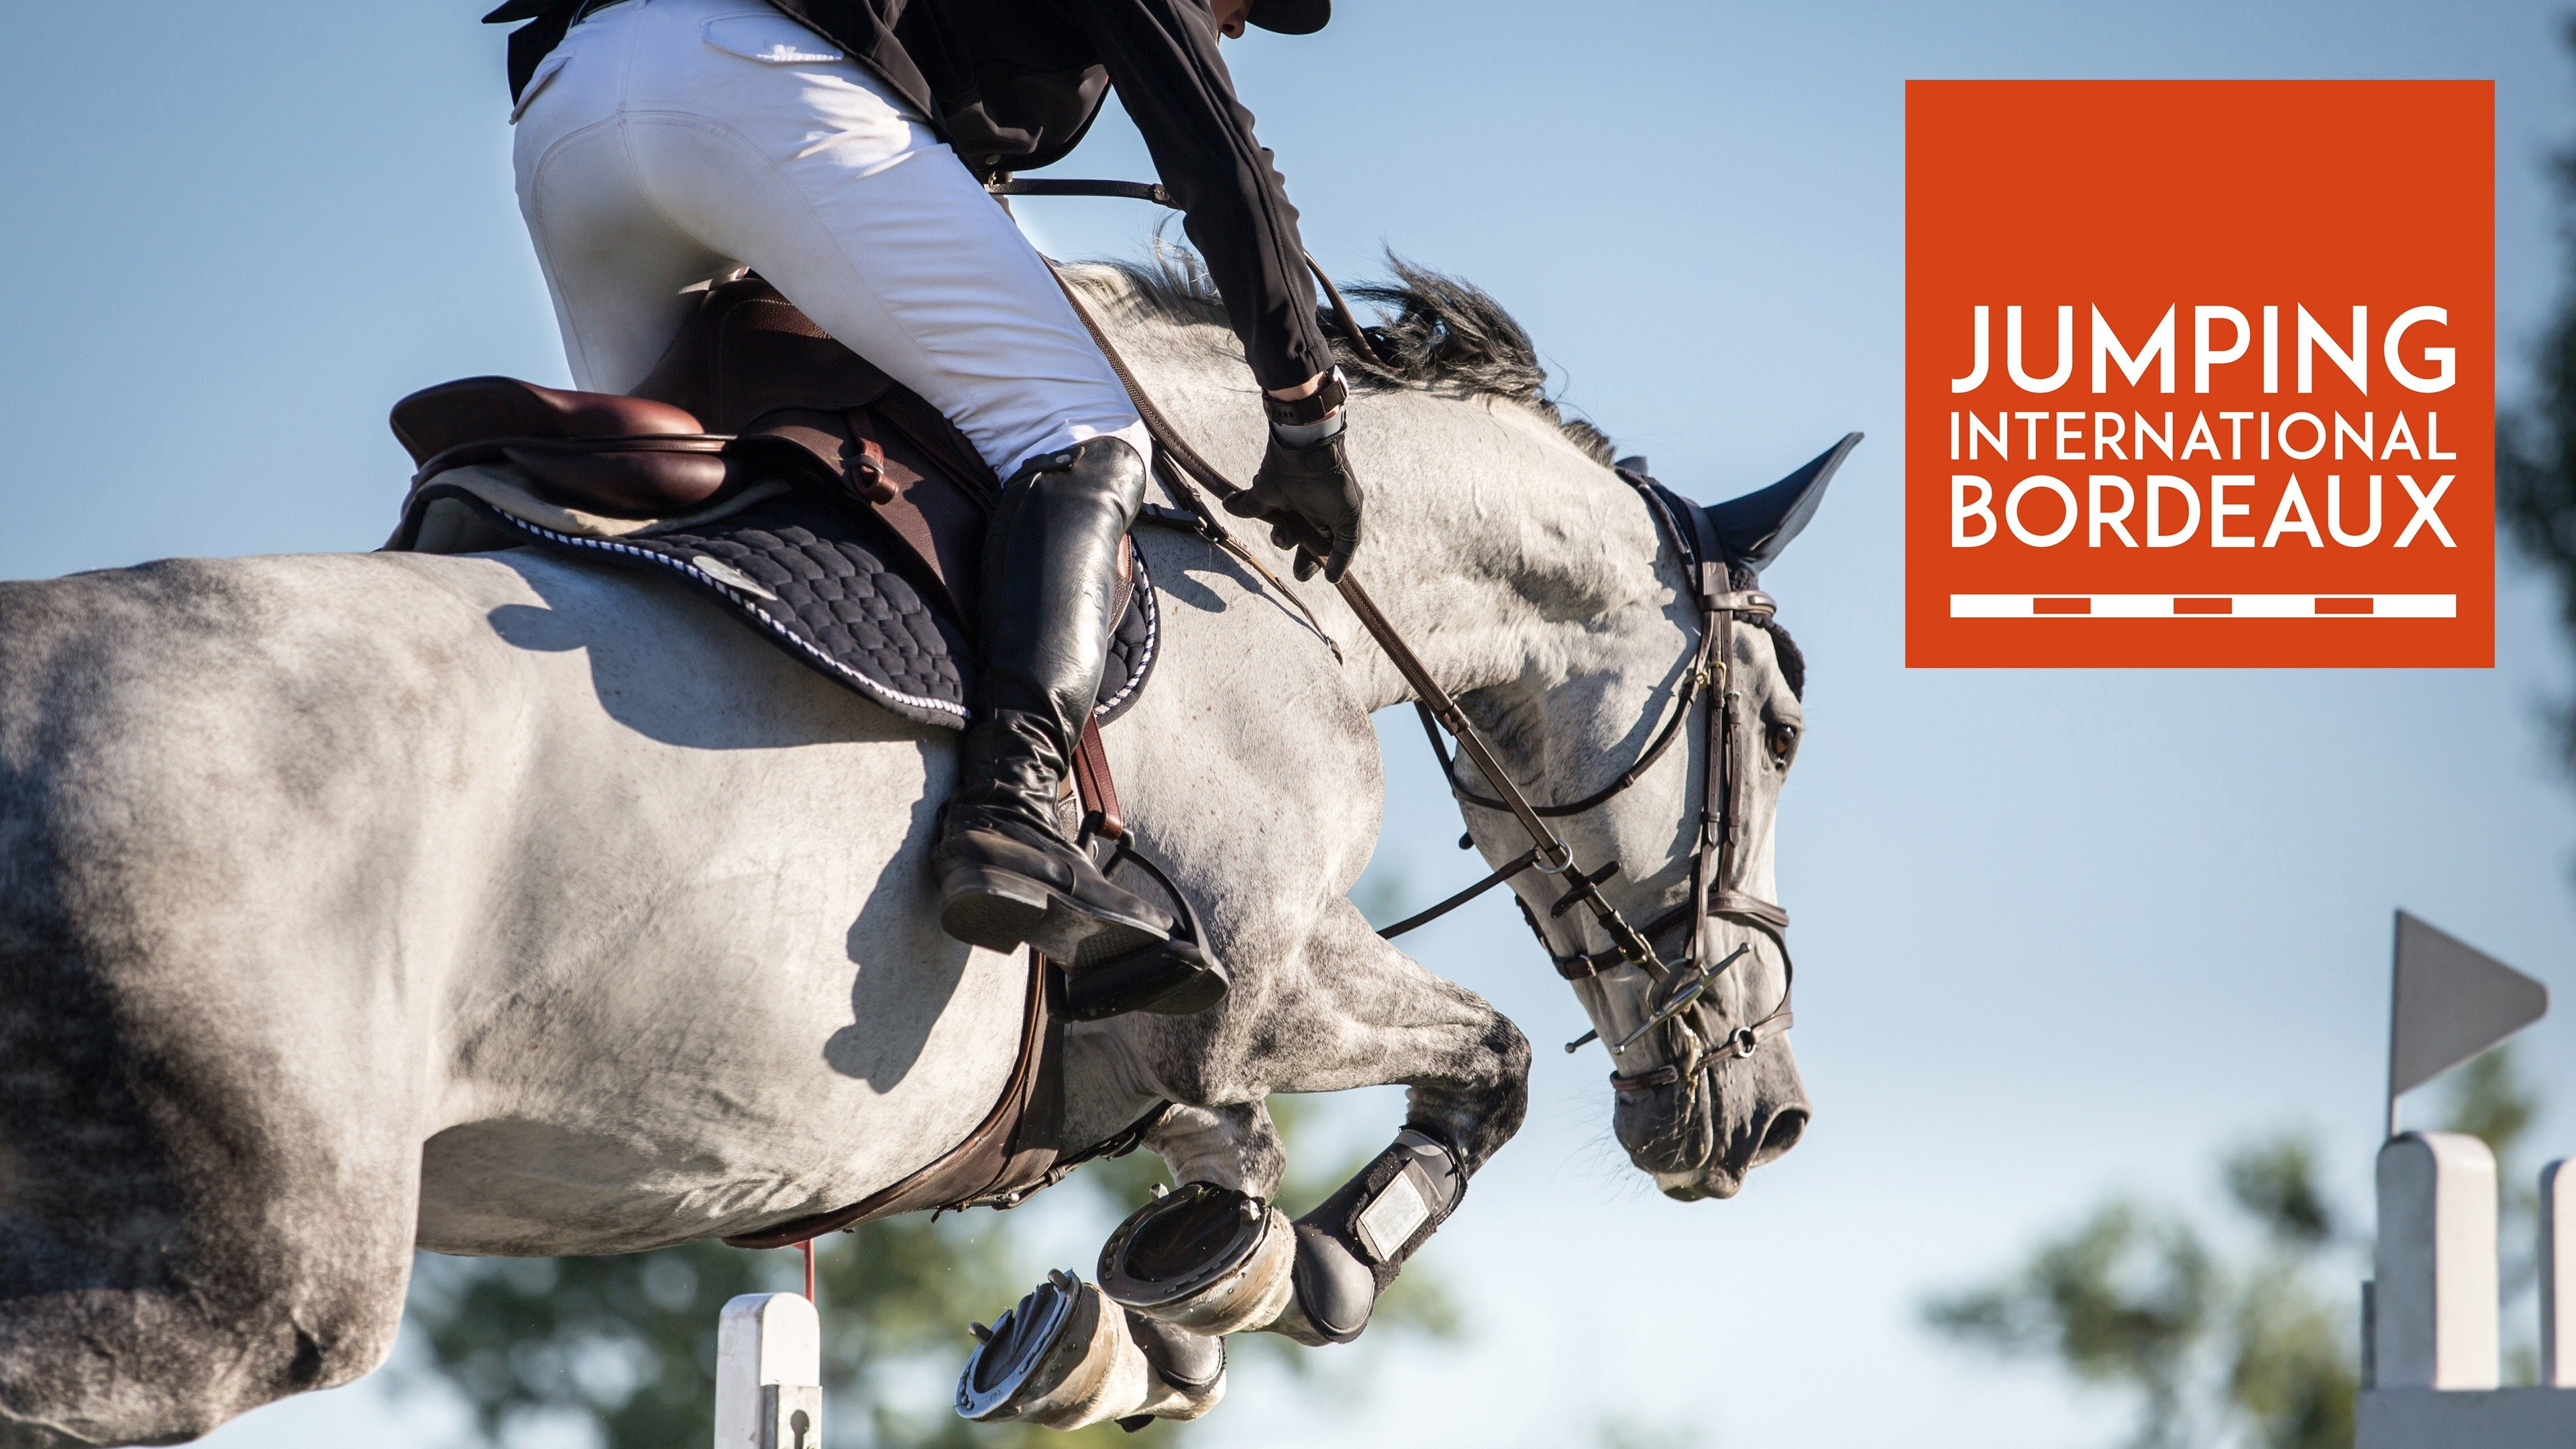 Jumping International of Bordeaux